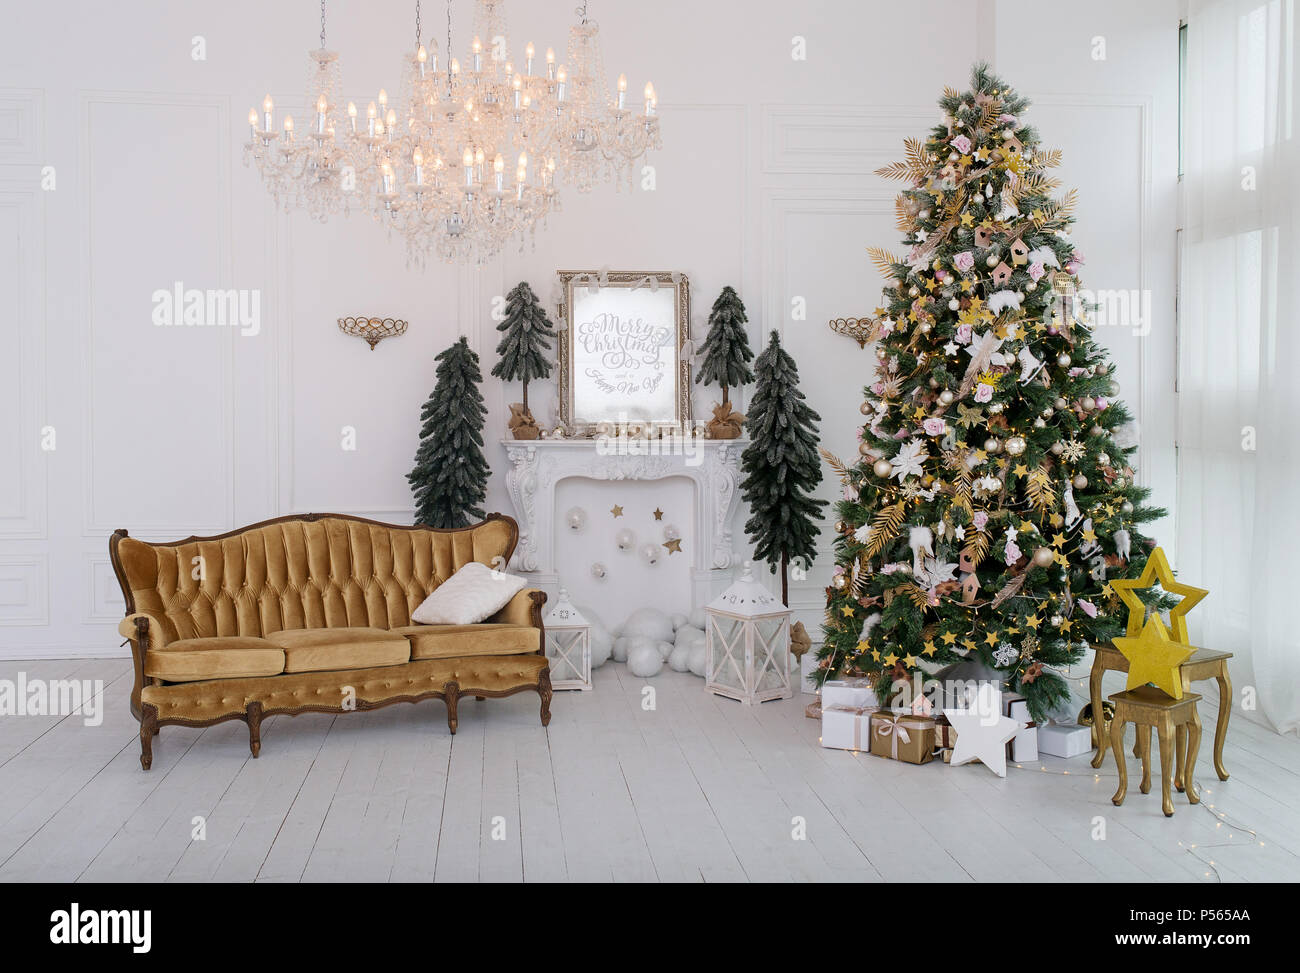 The bedroom decorated by Christmas. In the room there is a New Year's fir-tree decorated with toys and garlands. - Stock Image